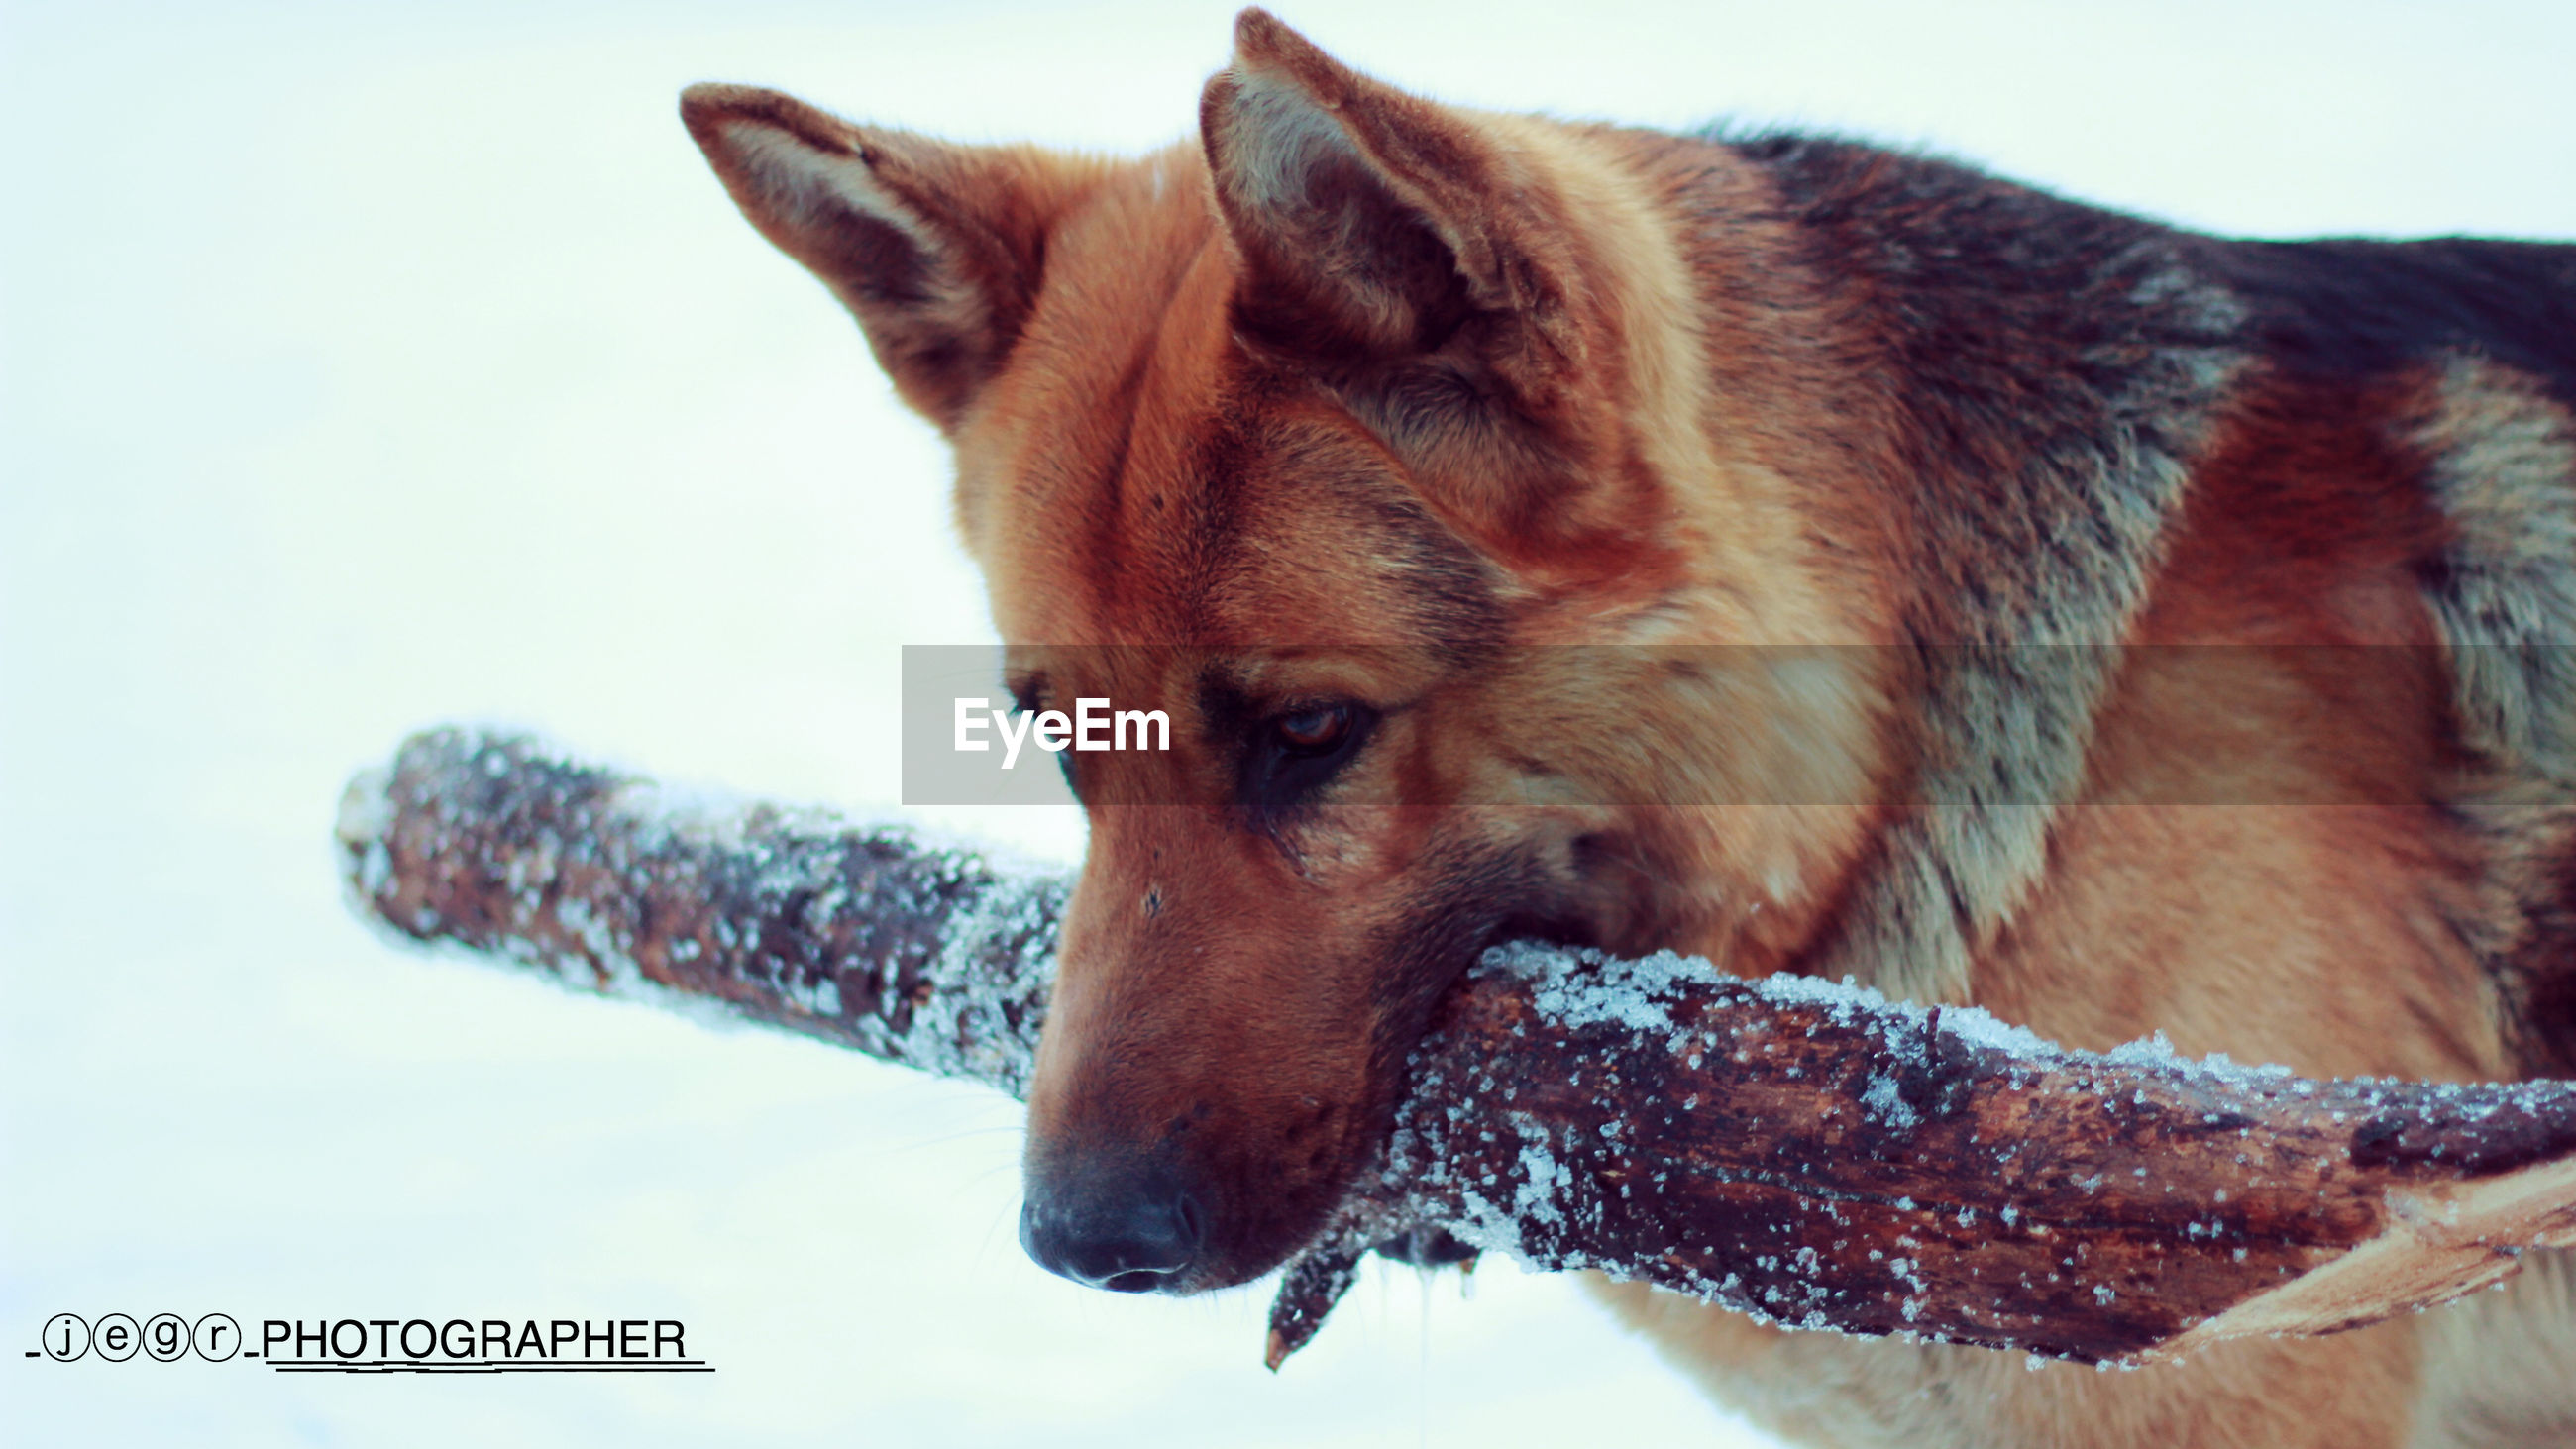 animal themes, one animal, mammal, domestic animals, pets, winter, cold temperature, snow, season, close-up, animal head, nature, animal body part, brown, dog, no people, looking away, side view, clear sky, day